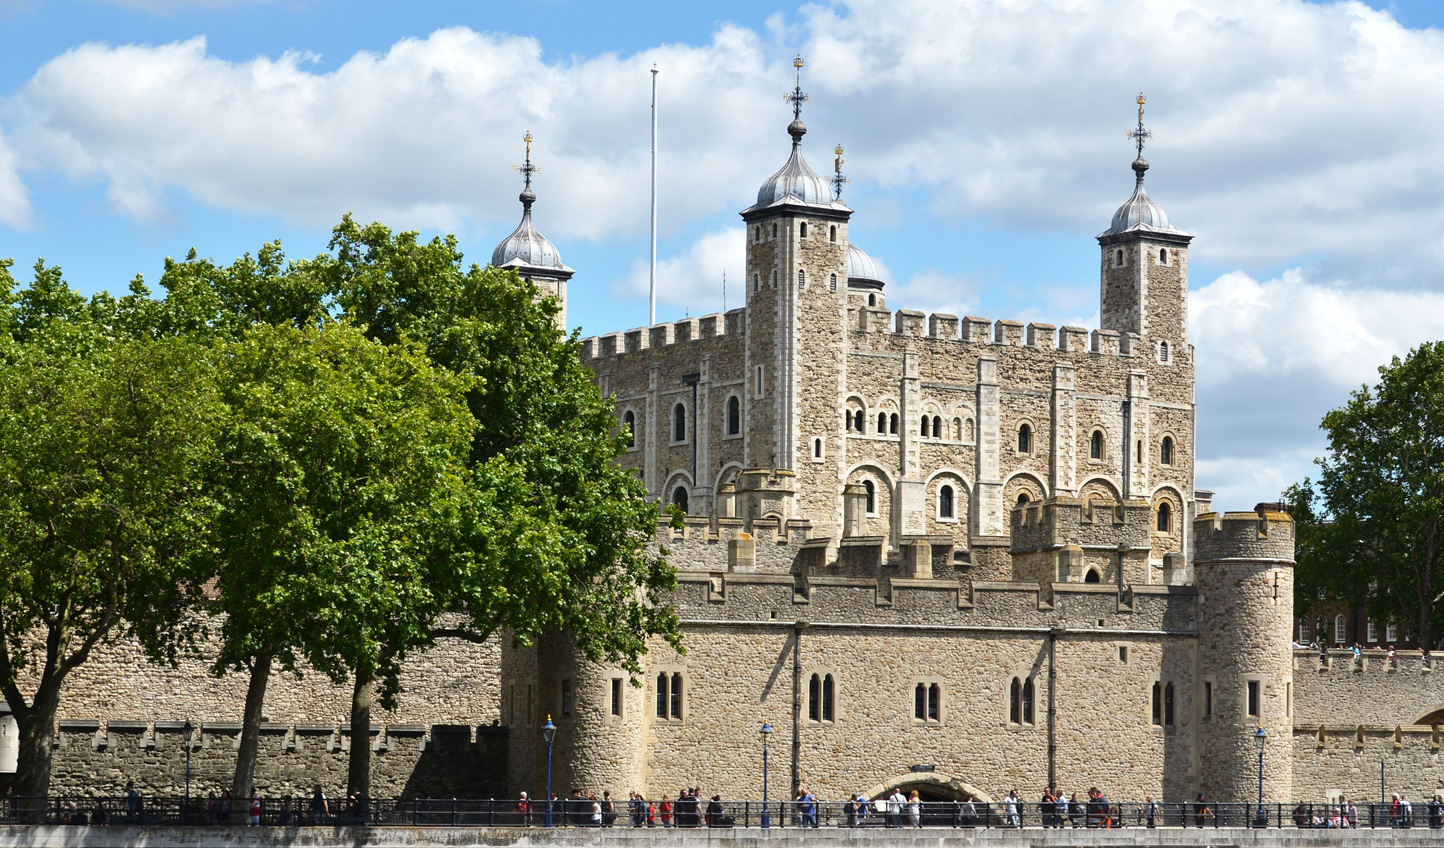 Take a private tour of The Tower of London and see the dazzling Crown Jewels